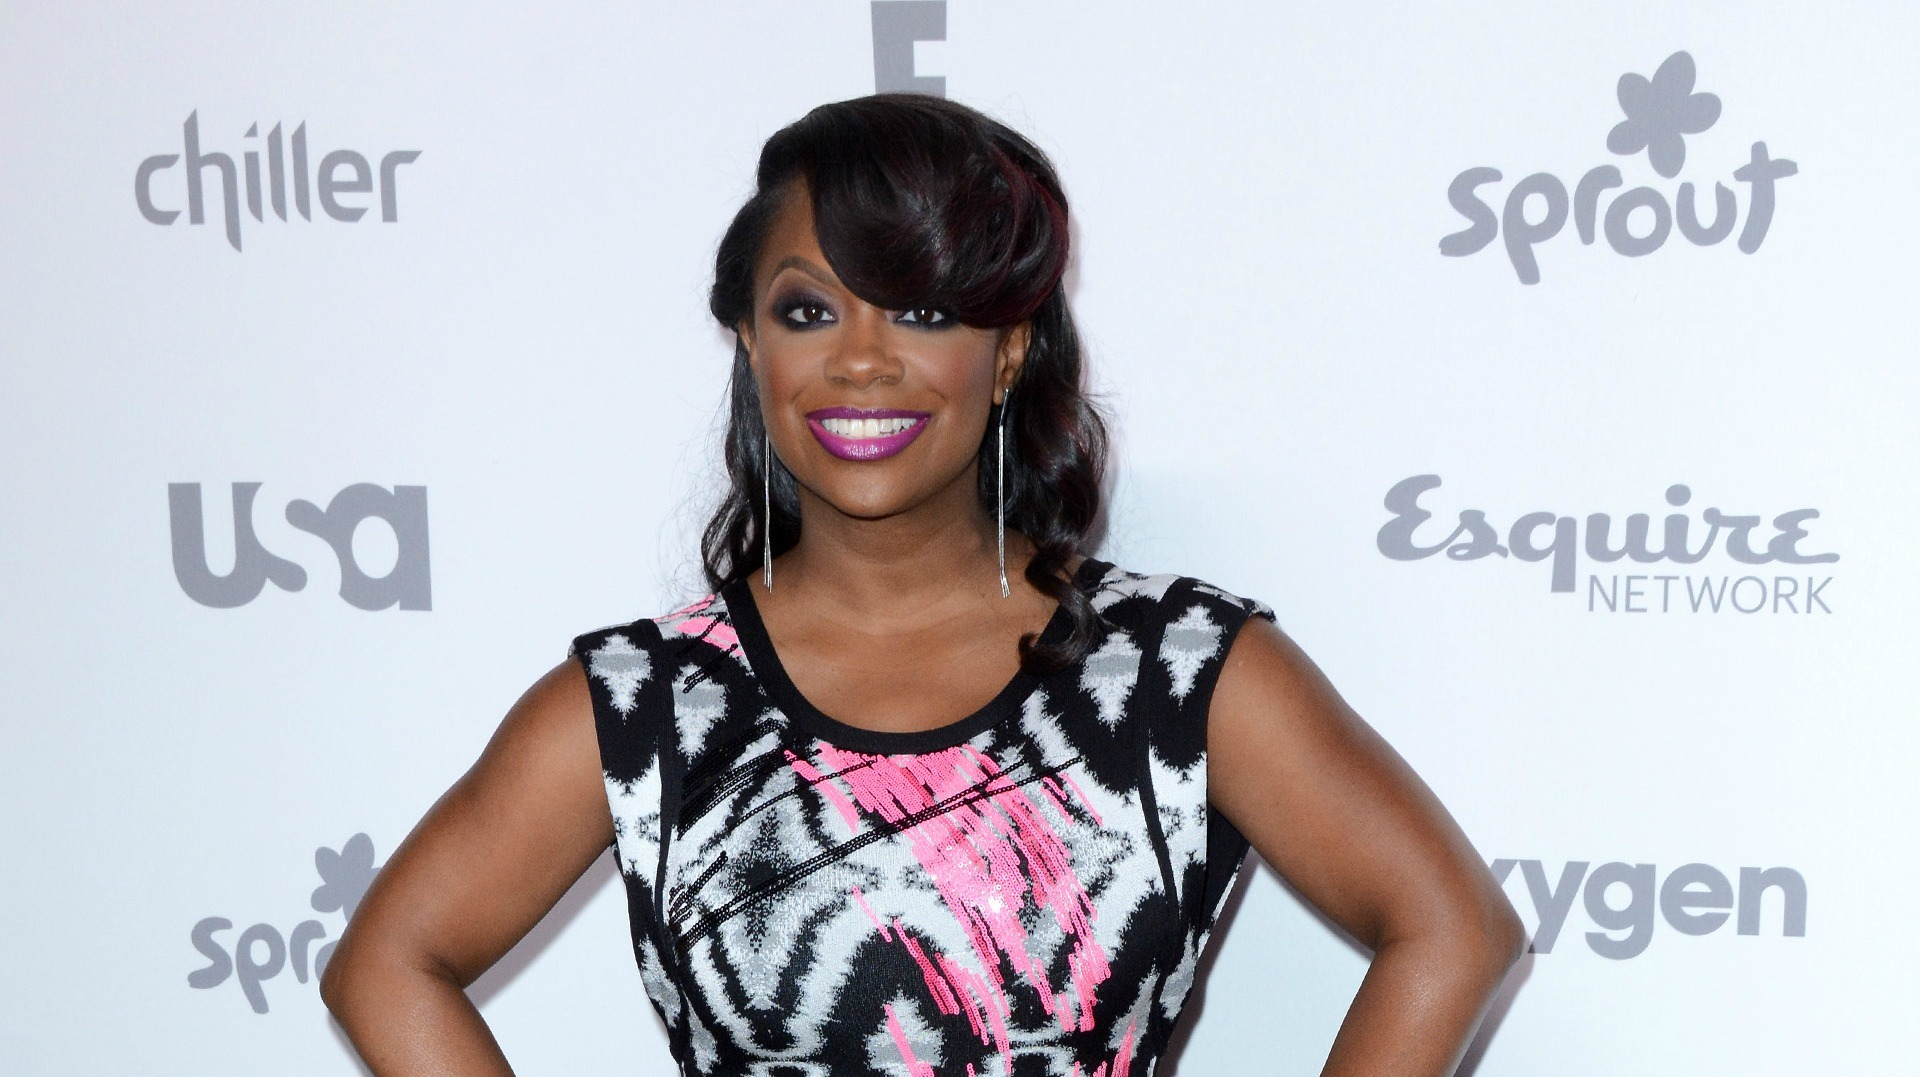 kandi-burruss-is-glowing-in-pink-at-an-important-event-where-she-shared-helpful-and-inspiring-knowledge-fans-notice-she-lost-a-lot-of-weight